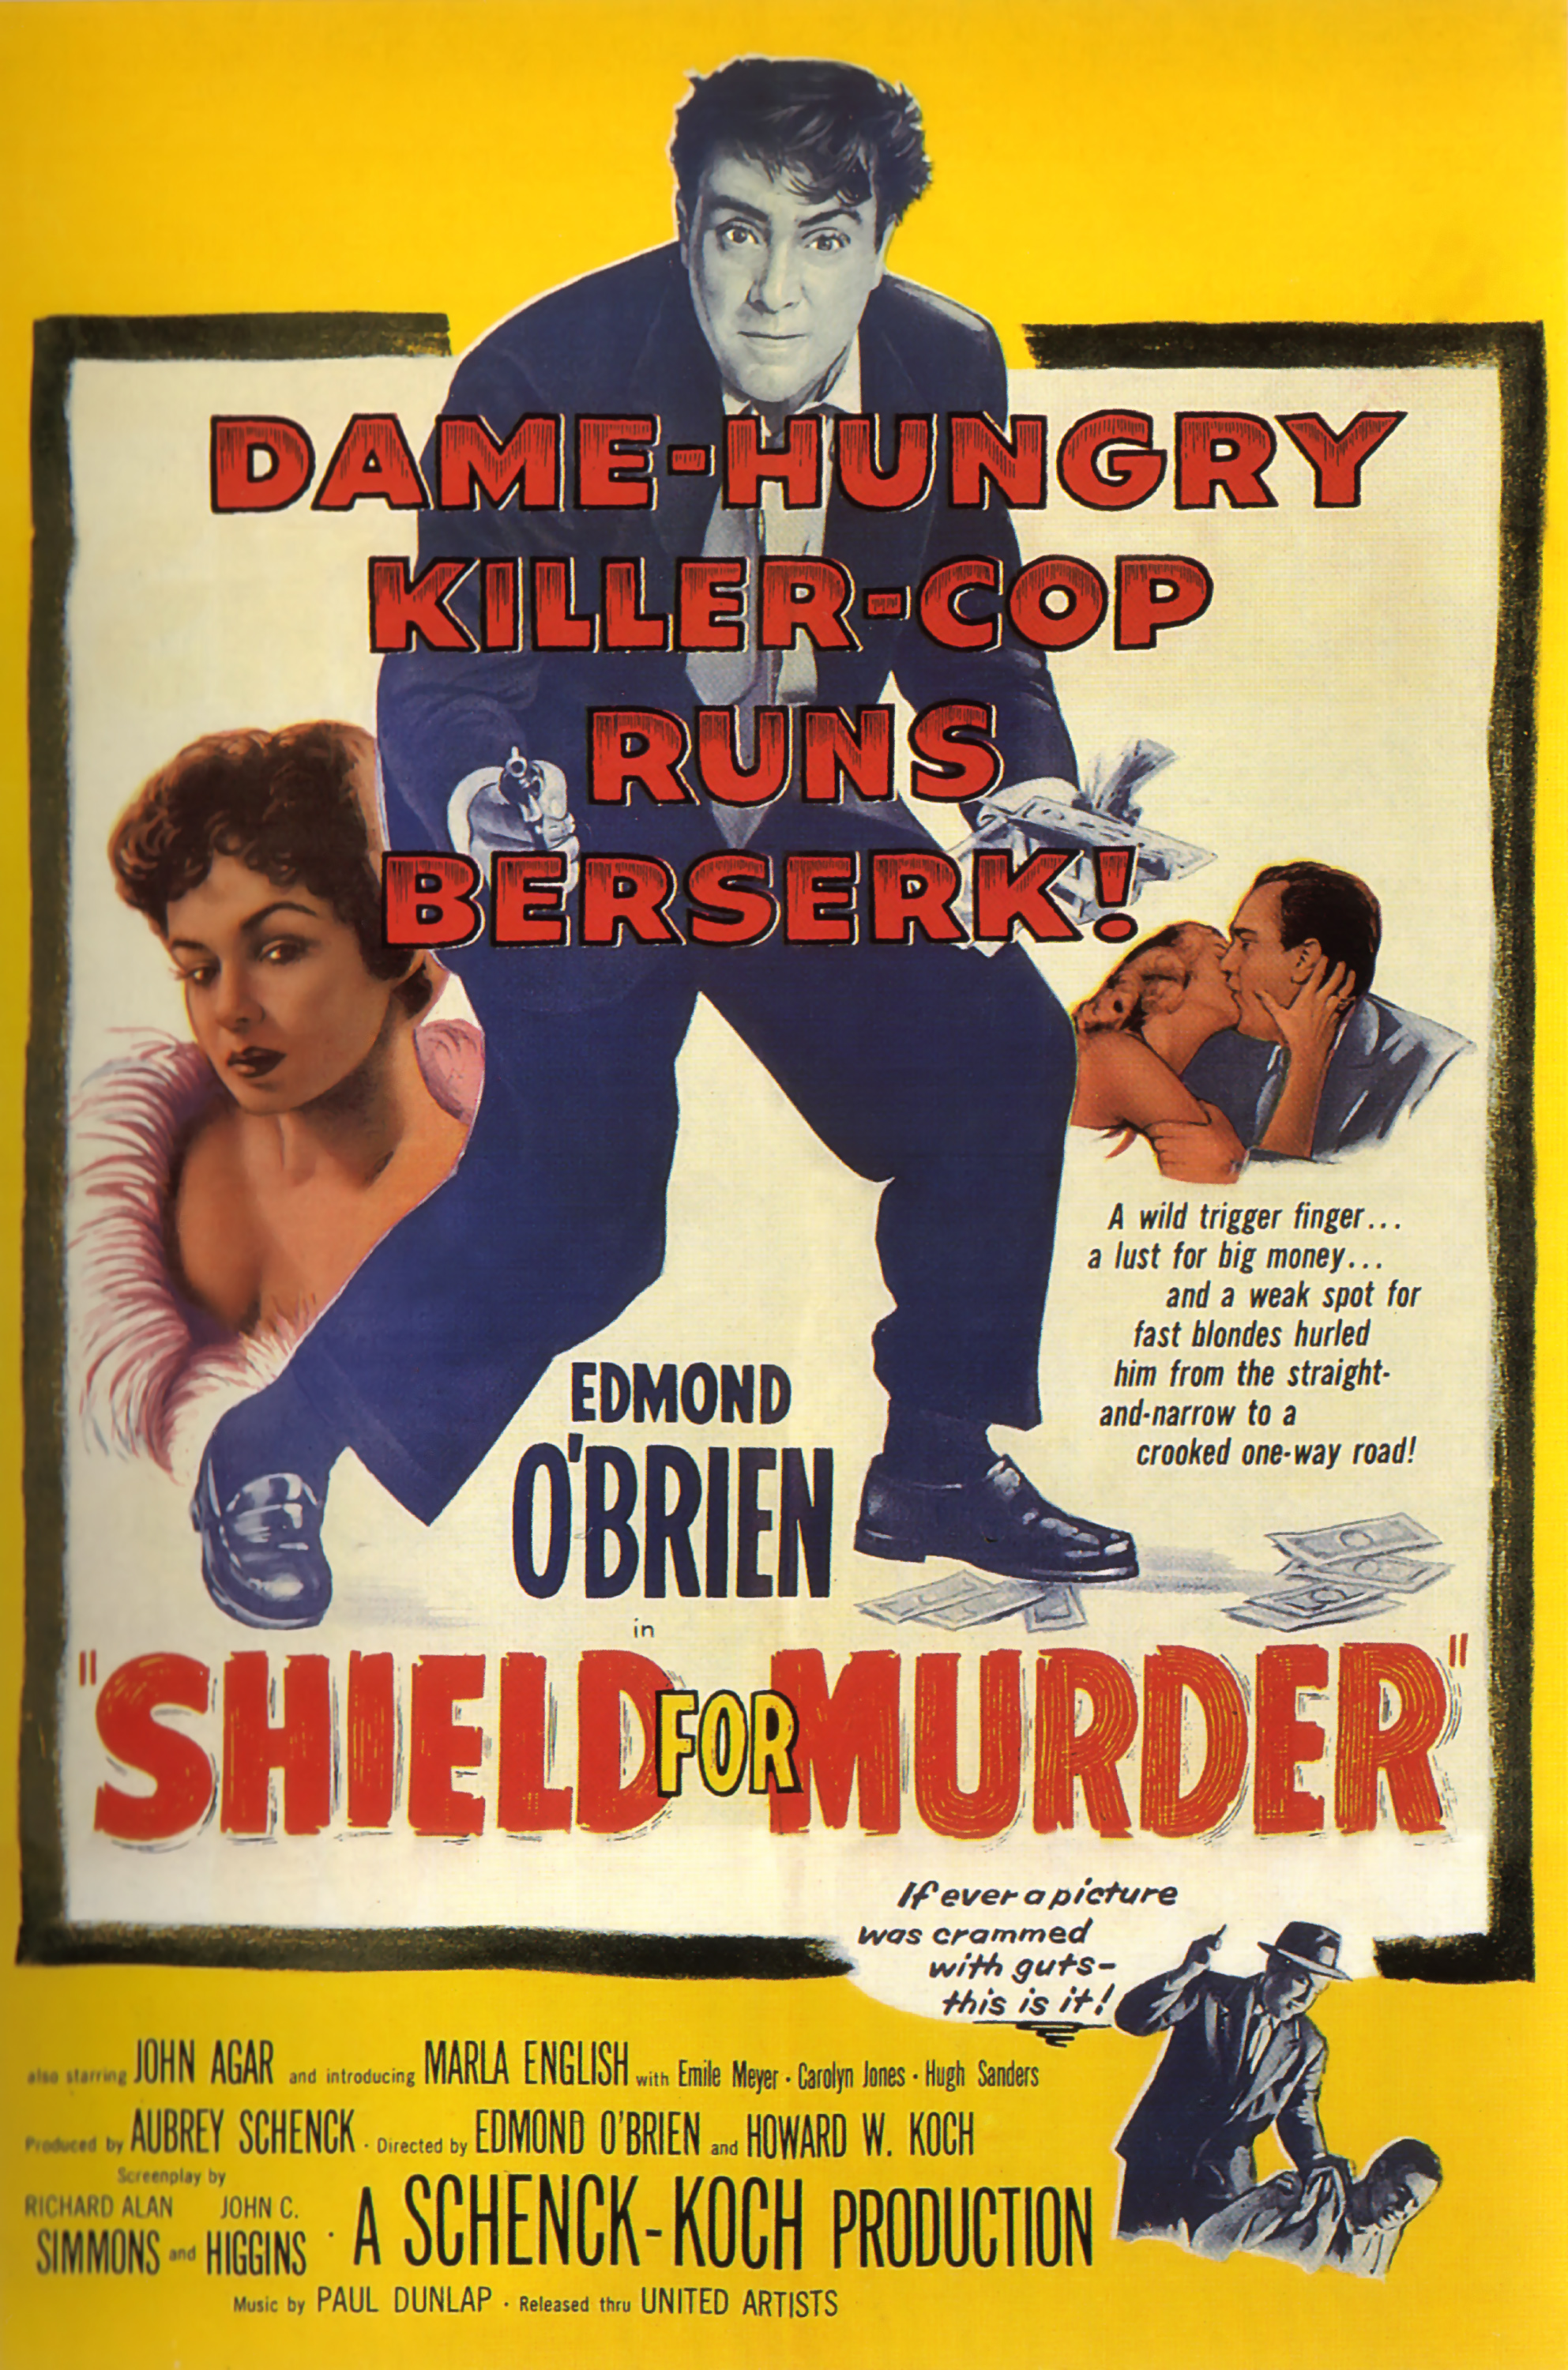 http://www.pulpcurry.com/wp-content/uploads/2015/12/Shield-for-Murder.jpg